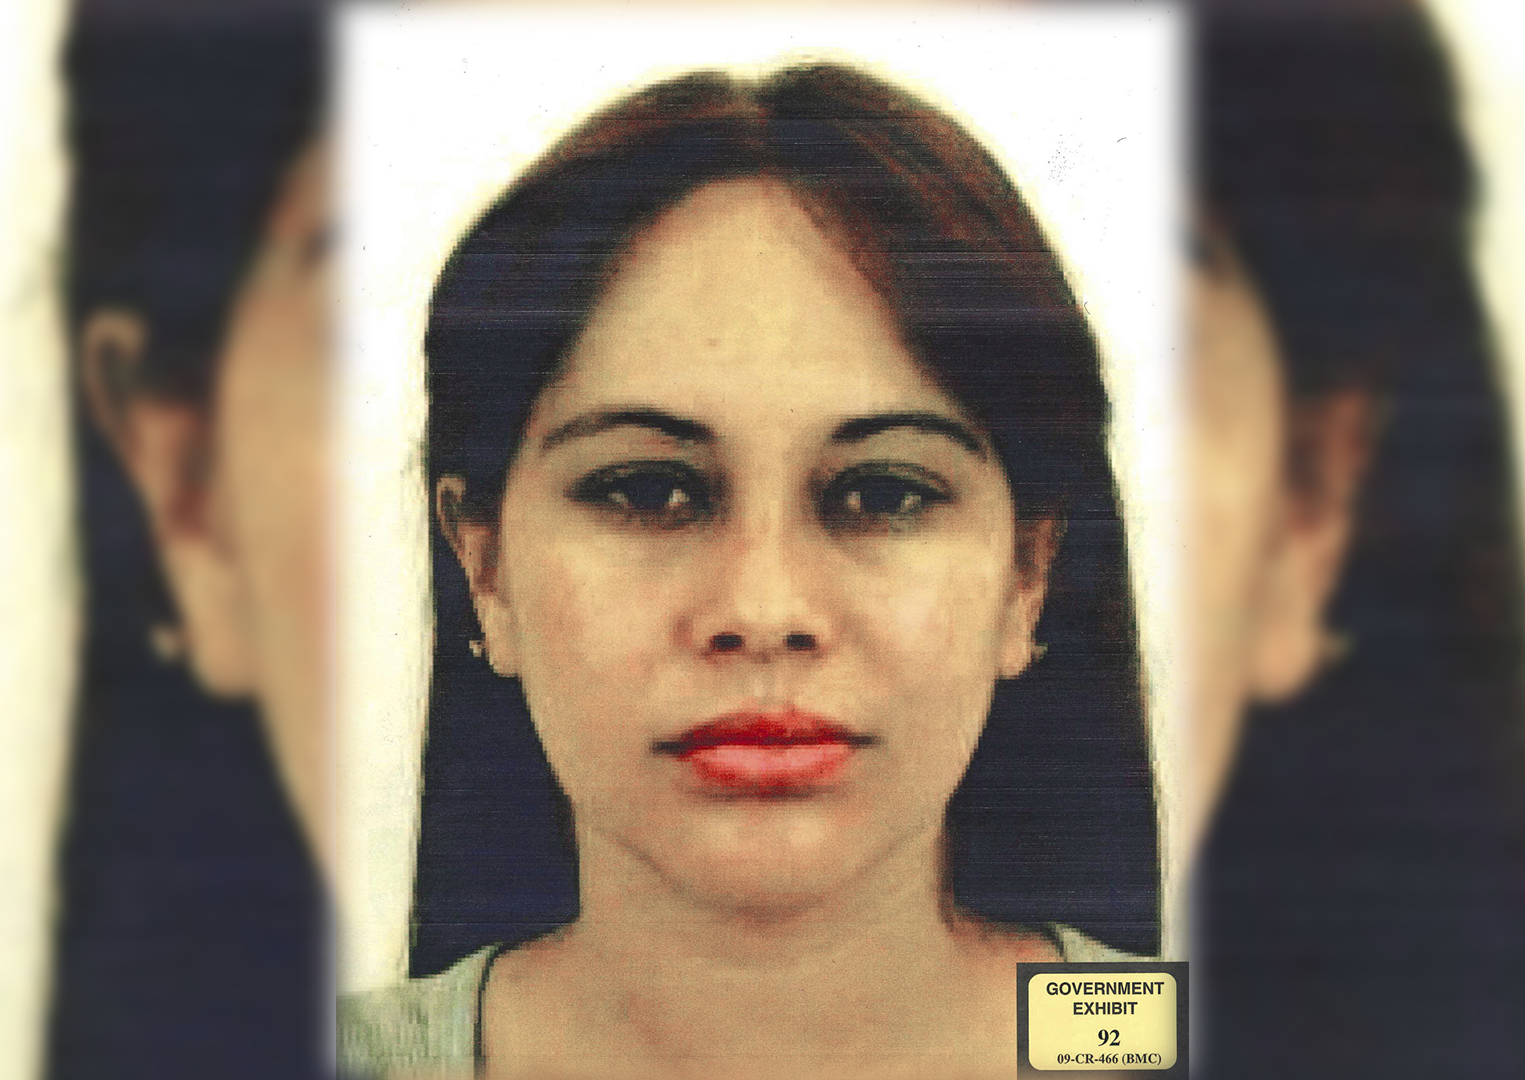 This undated photo provided by the United States Attorney for the Eastern District of New York shows Lucero Guadalupe Sanchez Lopez. (U.S. Attorney for the Eastern District of New York via AP)